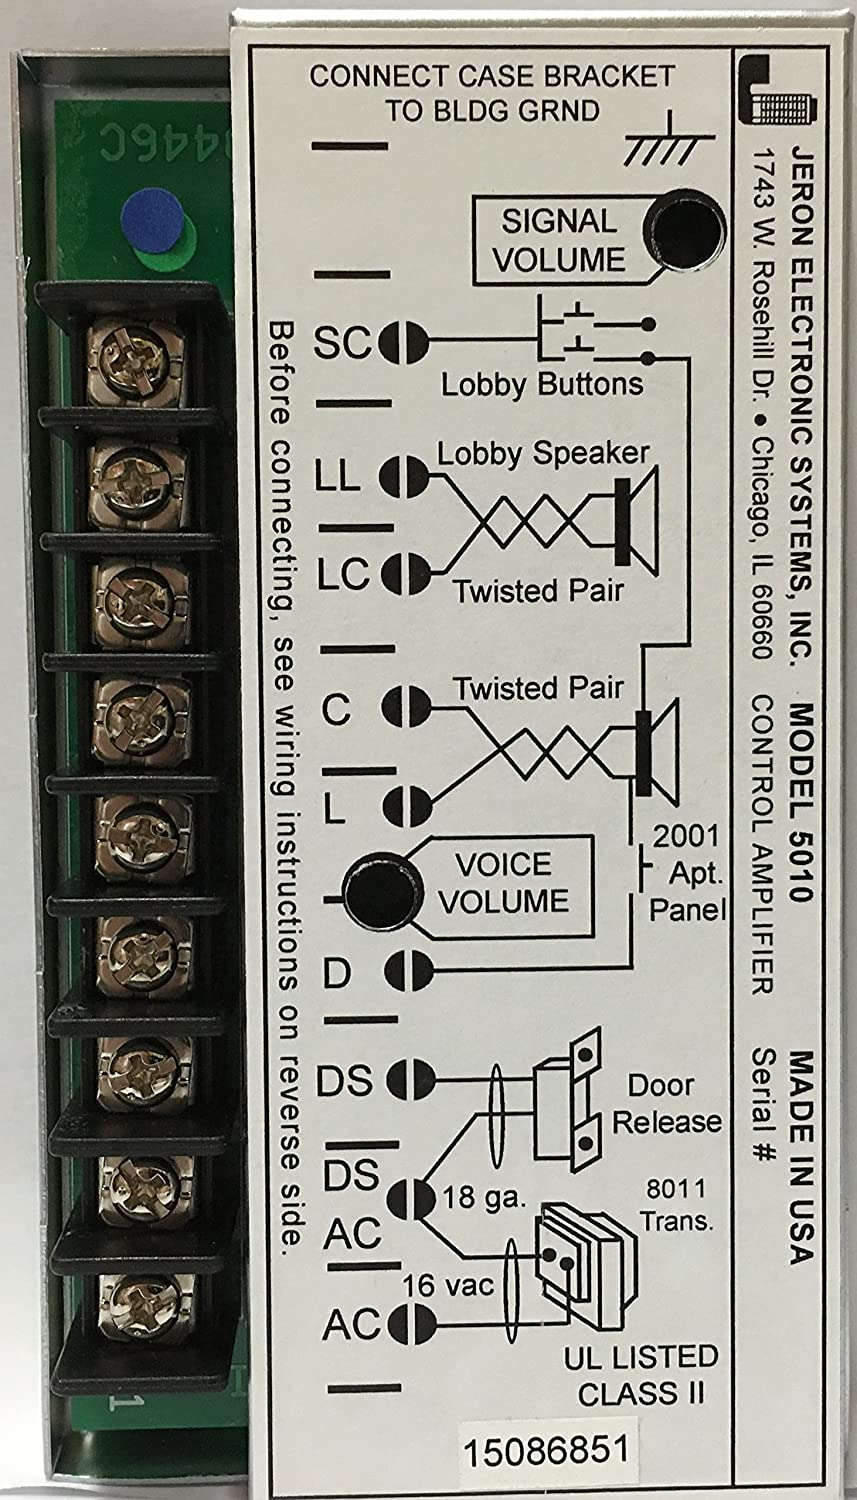 91s5eeIvDWL._SL1500_ 5010 amplifier amazon com industrial & scientific jeron 5010 wiring diagram at soozxer.org